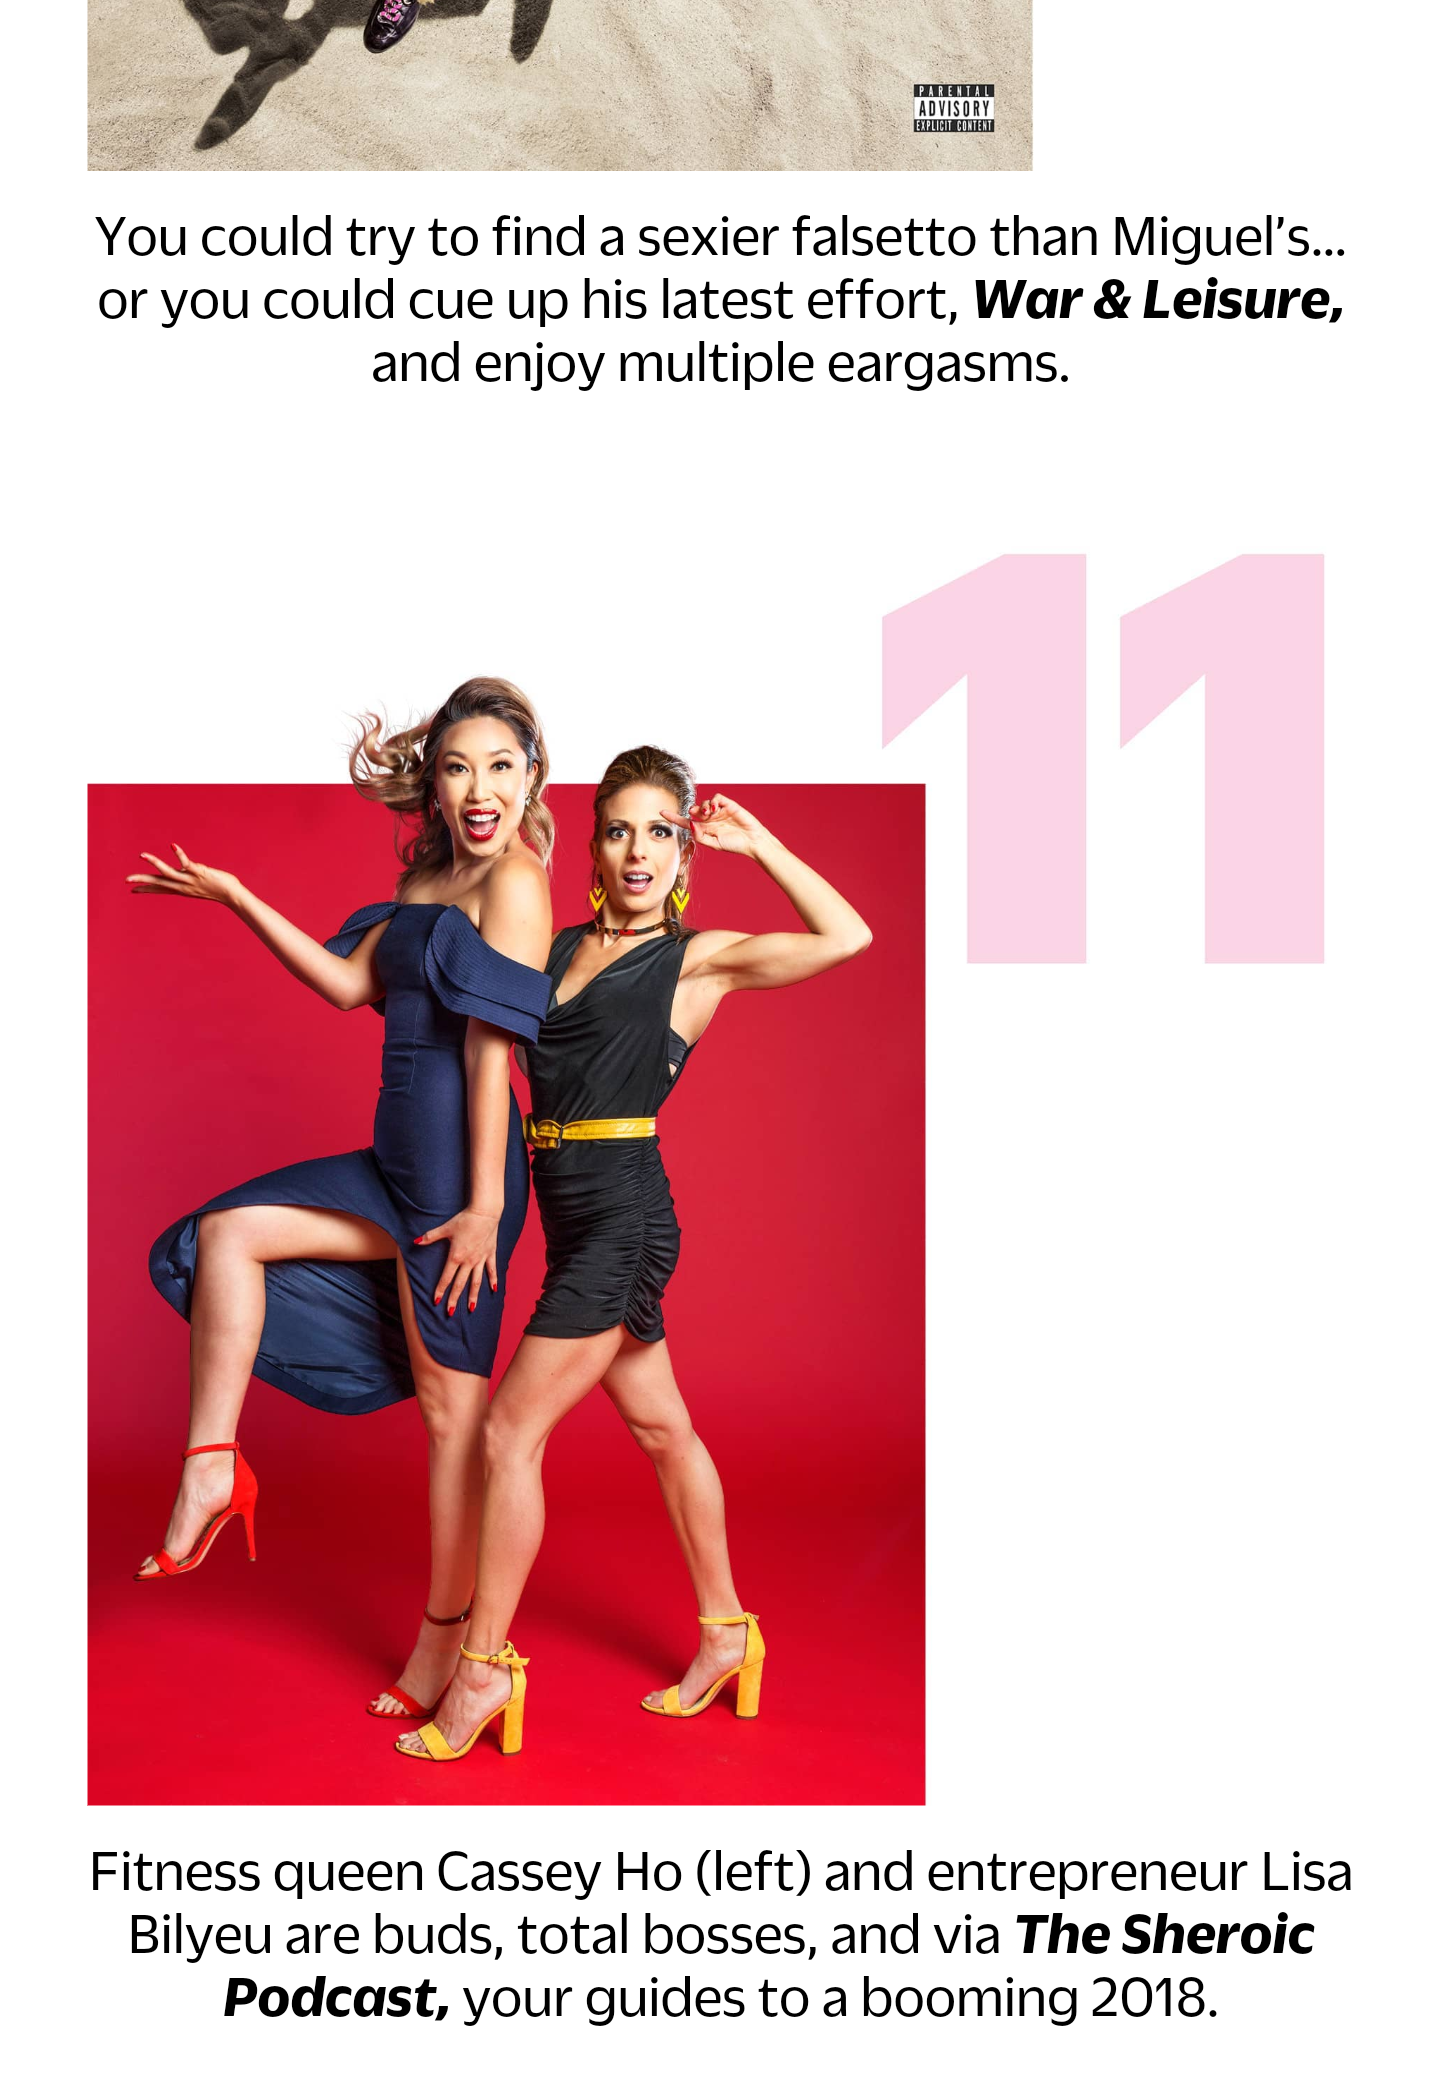 Featured in Cosmopolitan January 2018 issue.